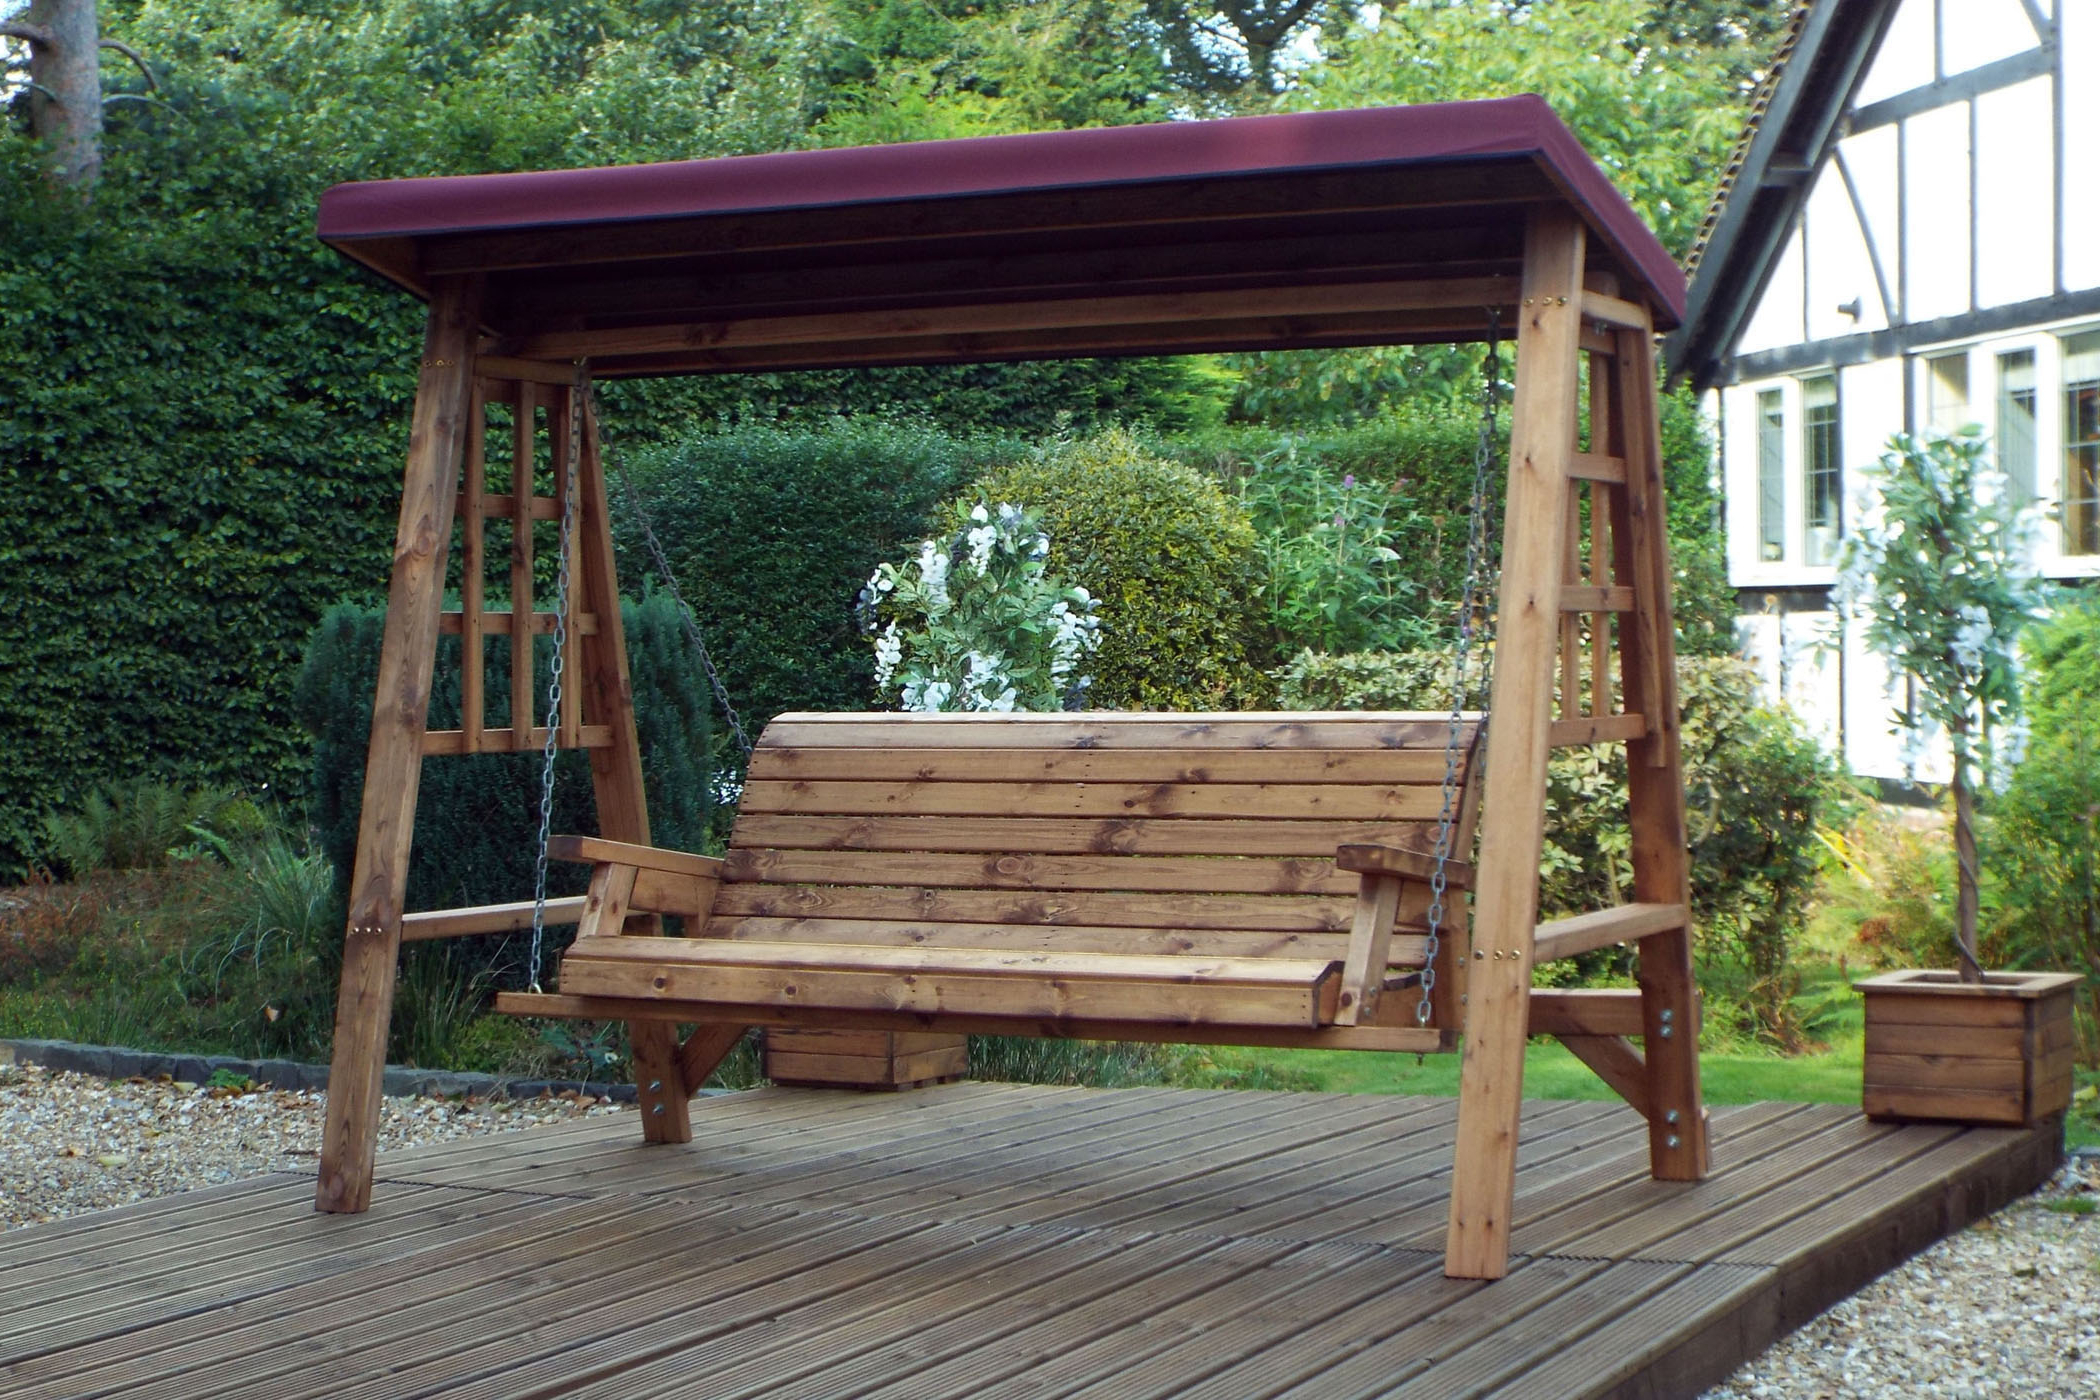 Most Recent 3 Seater Wooden Garden Swing Seat – Wooden Garden Hammock – 3 Seat Swing With Canopy Intended For 3 Seat Pergola Swings (View 5 of 25)